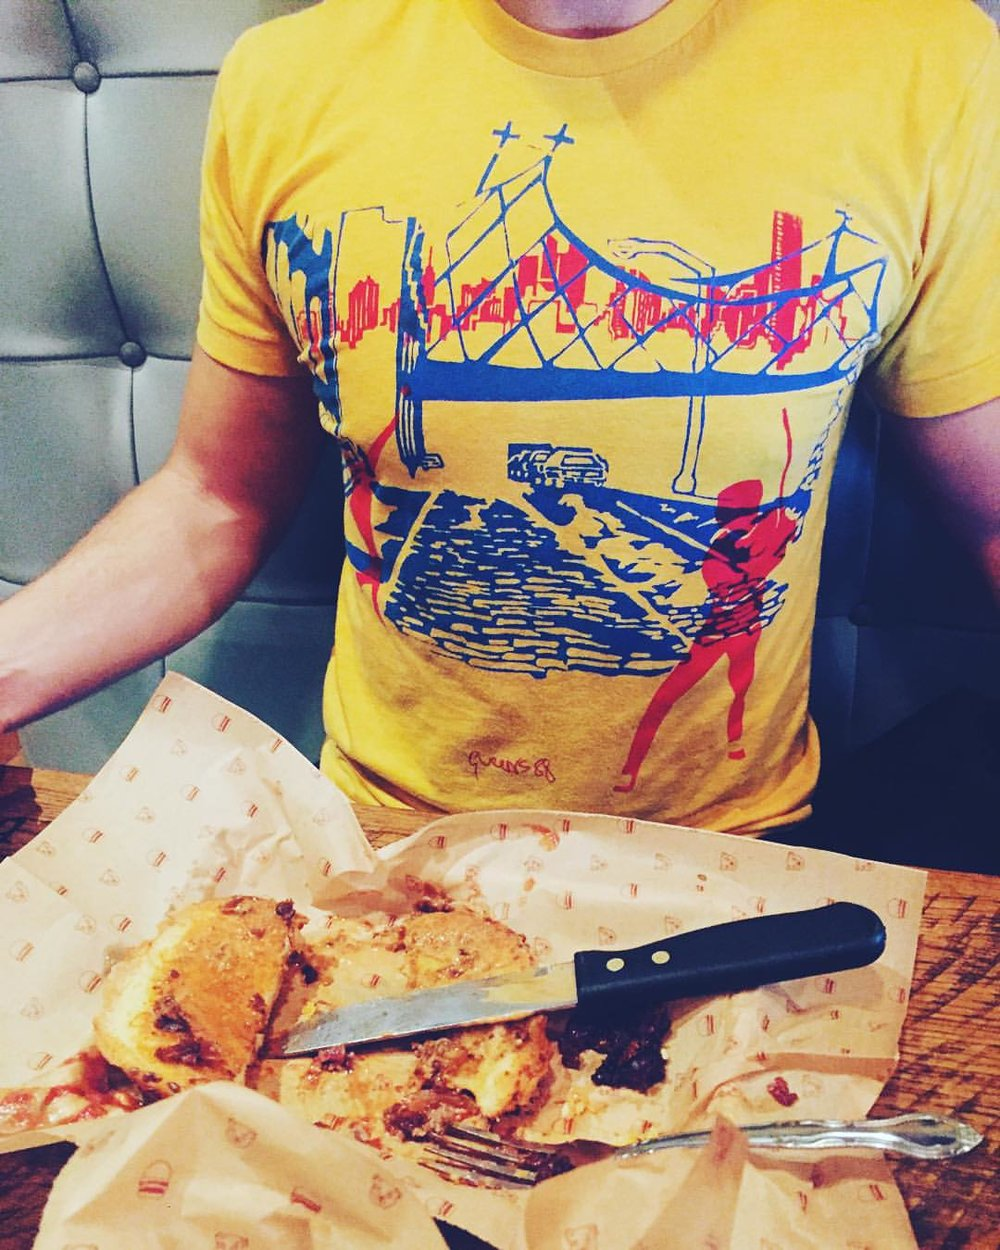 Late dinner Bareburger in Long Island City with his favorite Queens88 stickball shirt .